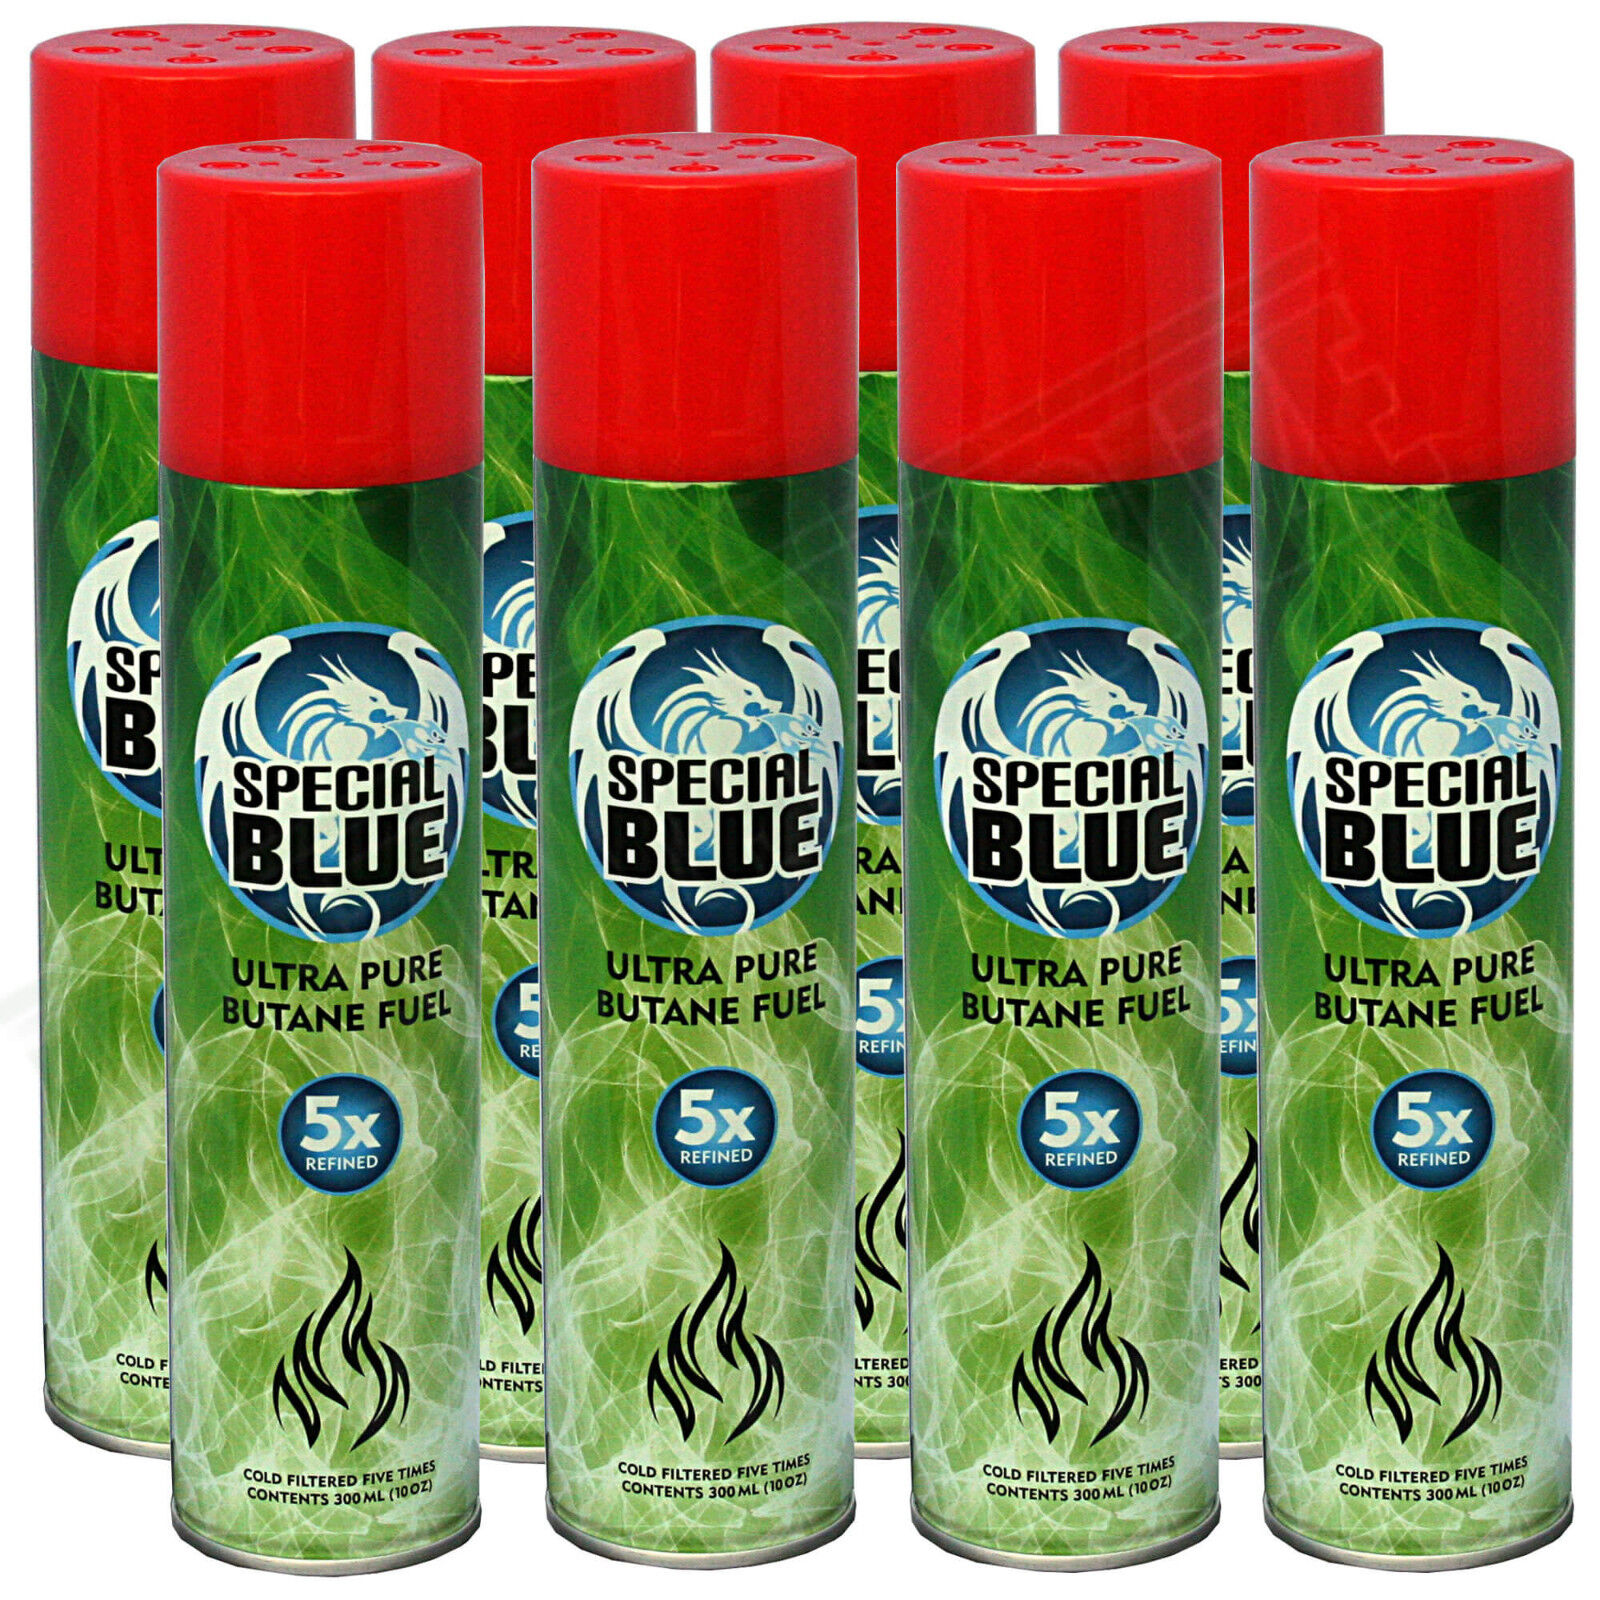 8x Special Blue 5x Refined Butane Gas Extra Purified Fuel Torch ... for Torch Lighter Refill  303mzq